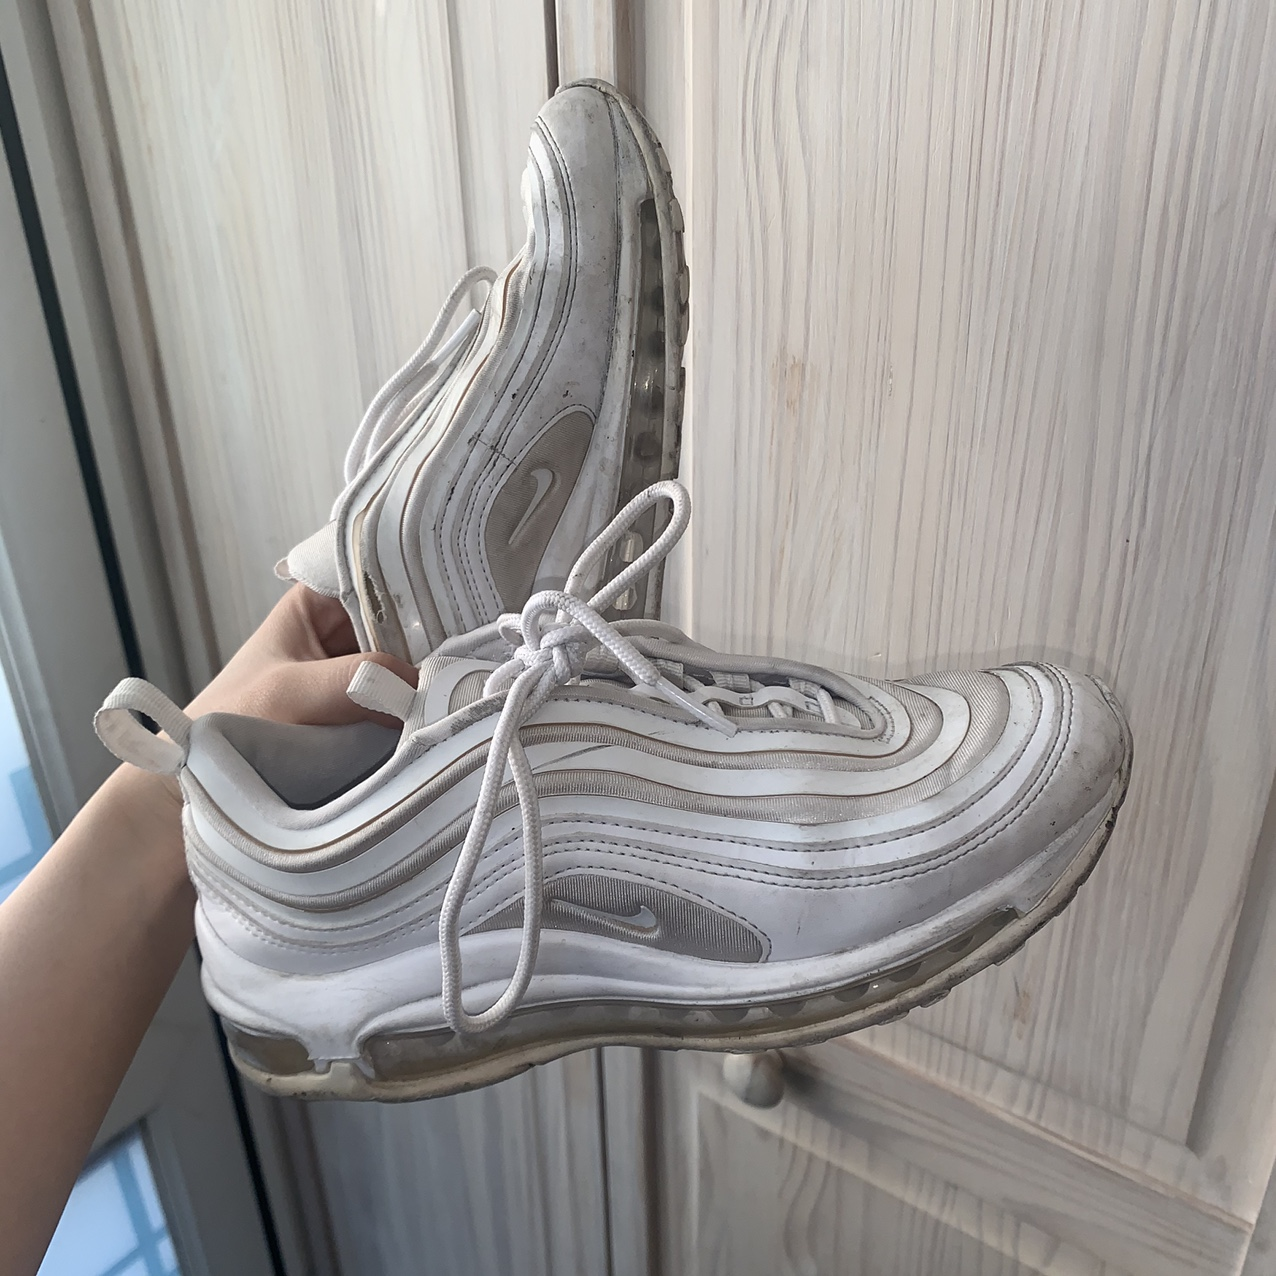 Nike Air Max 97 Size 3 5 Triple White But Sole Has Depop